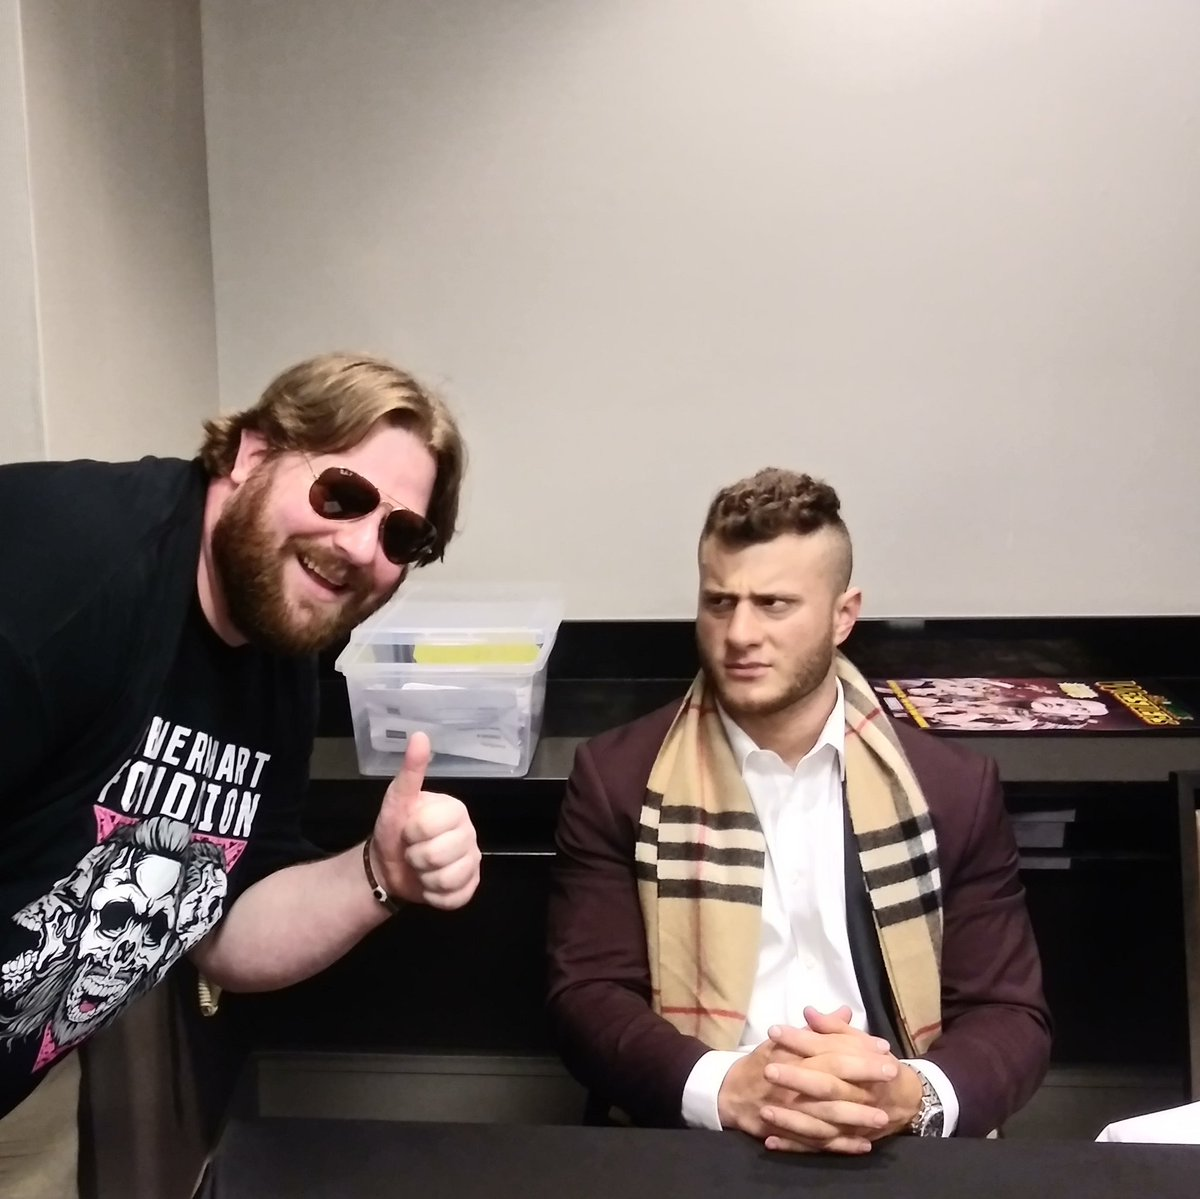 @TheArnShow @The_MJF @Sportskeeda @SKWrestling_ I was 3 feet away when it happened because my meet and greet was just before this. It was great and the guy in the wheelchair loved every second. Me personally, if he was nice to me I would've been disappointed. He was not nice  😁